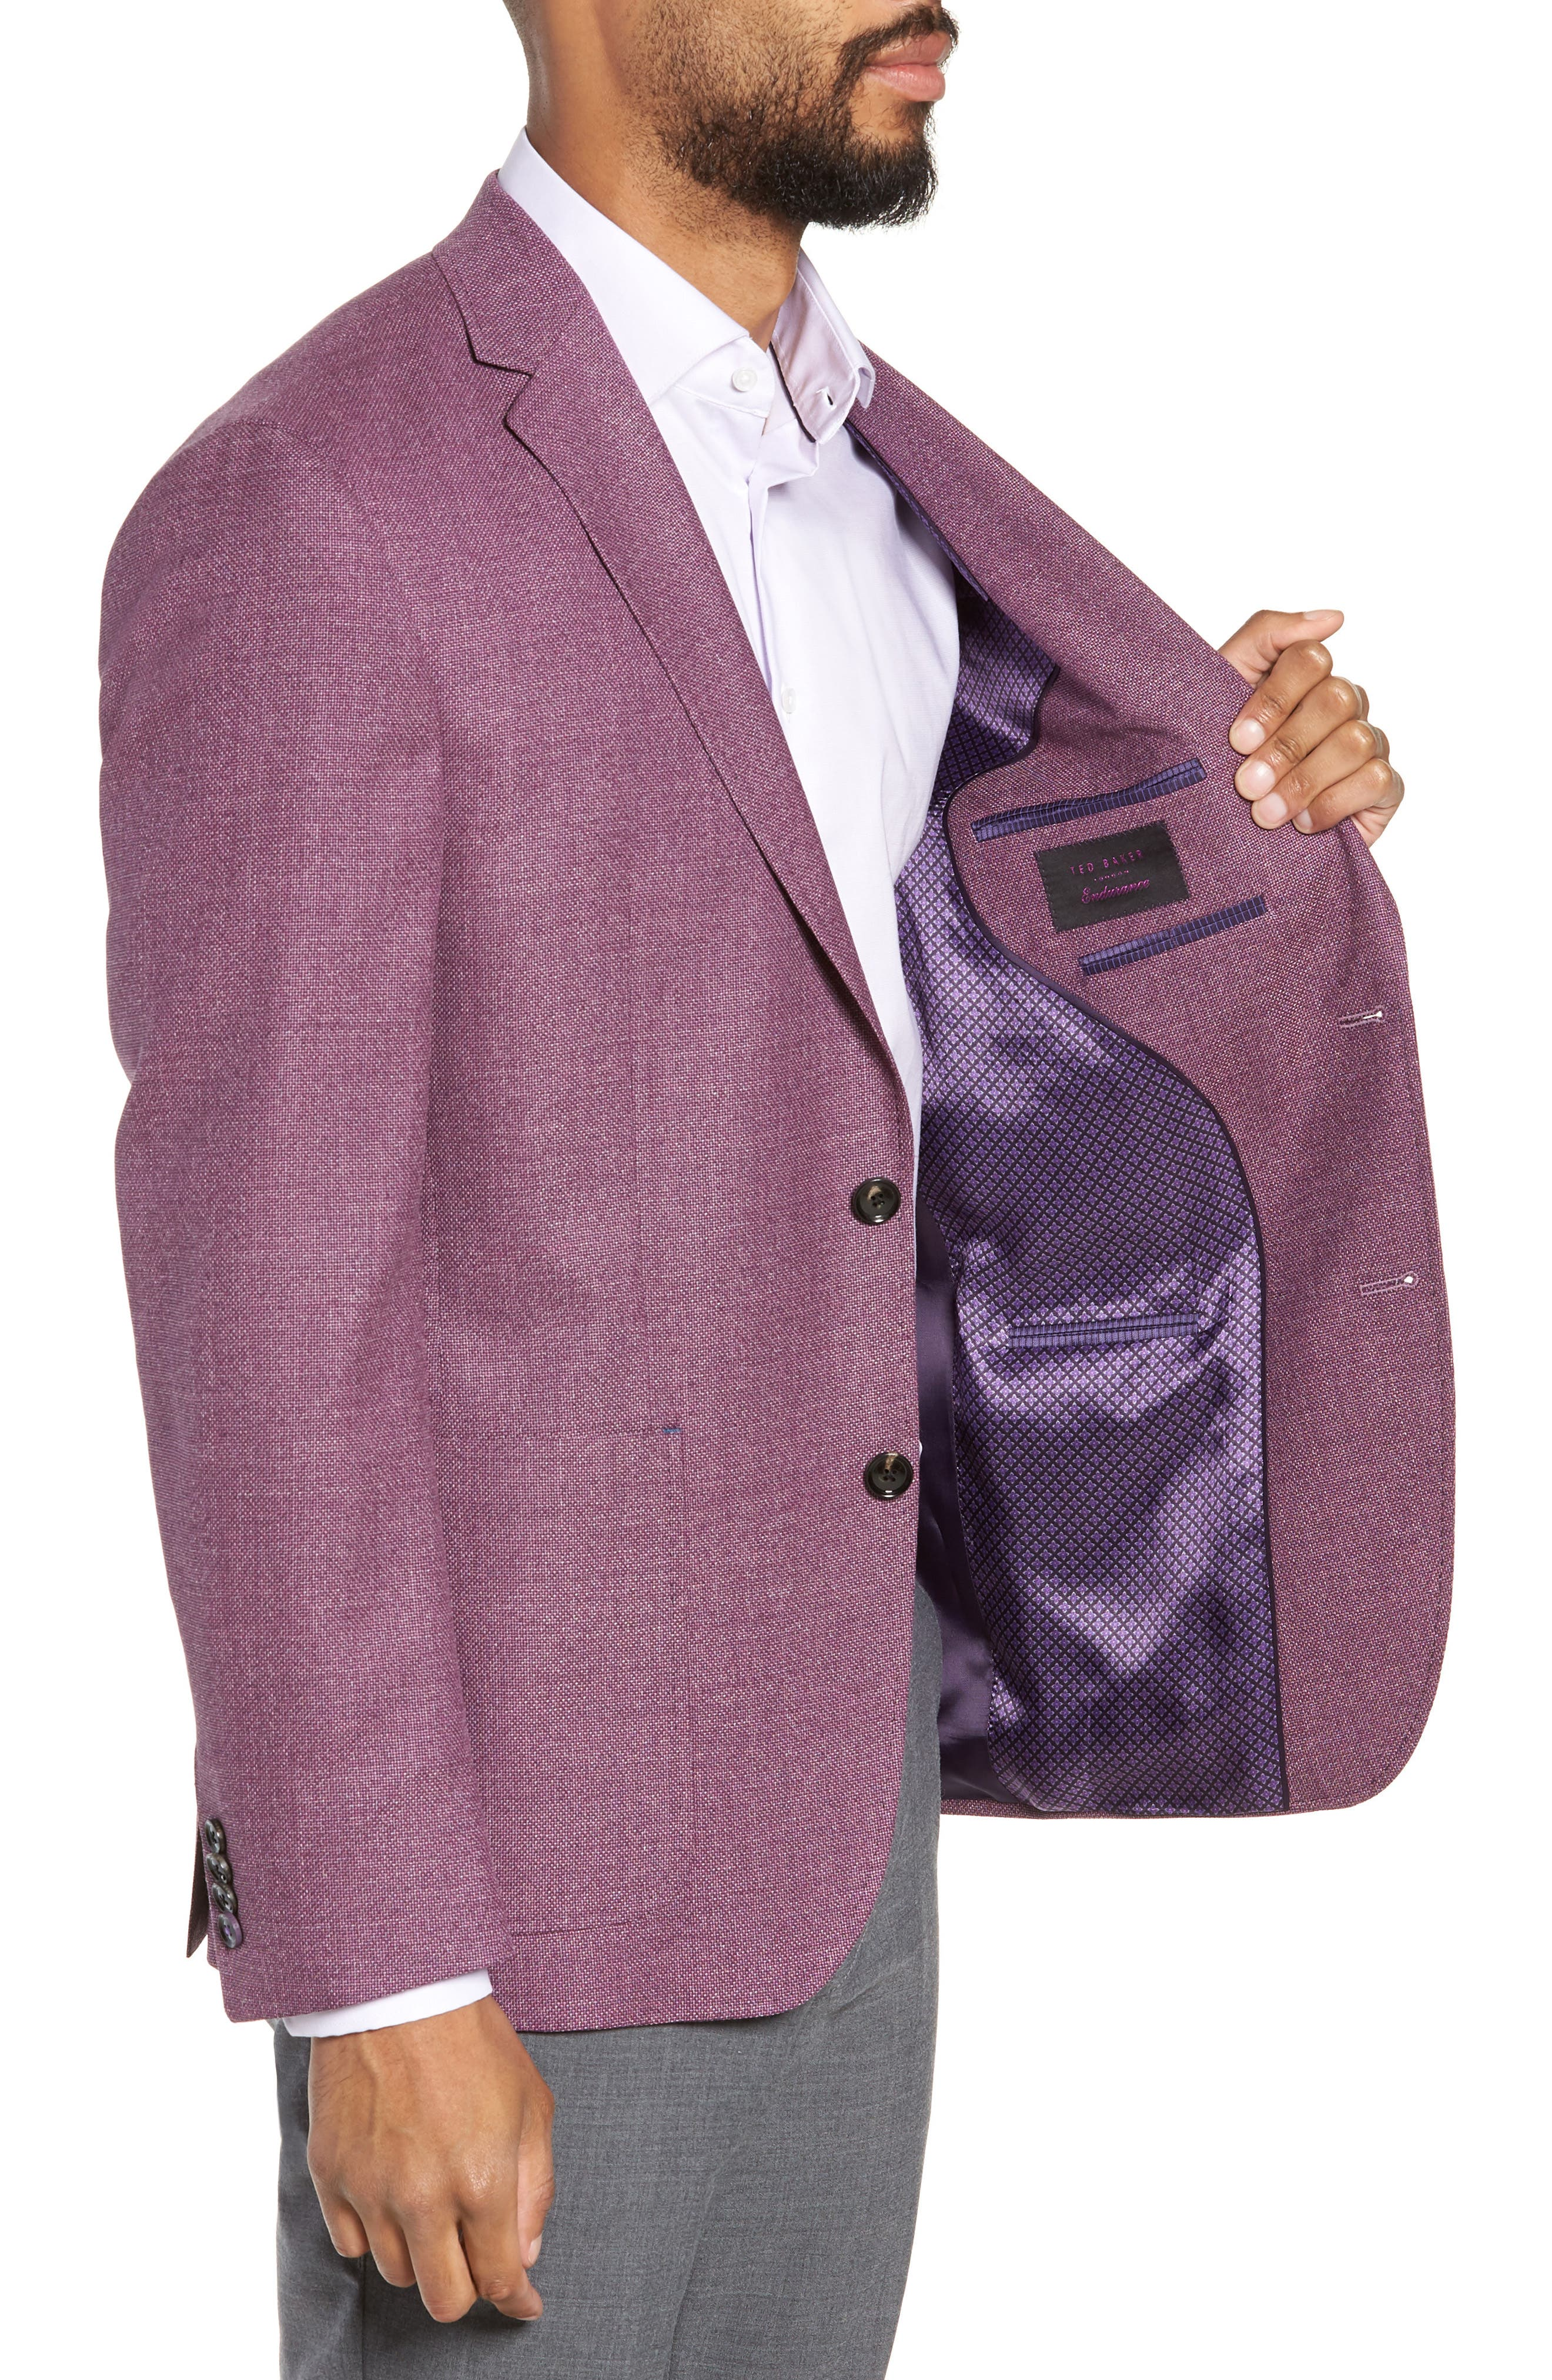 TED BAKER LONDON, Kyle Trim Fit Wool Sport Coat, Alternate thumbnail 4, color, BERRY